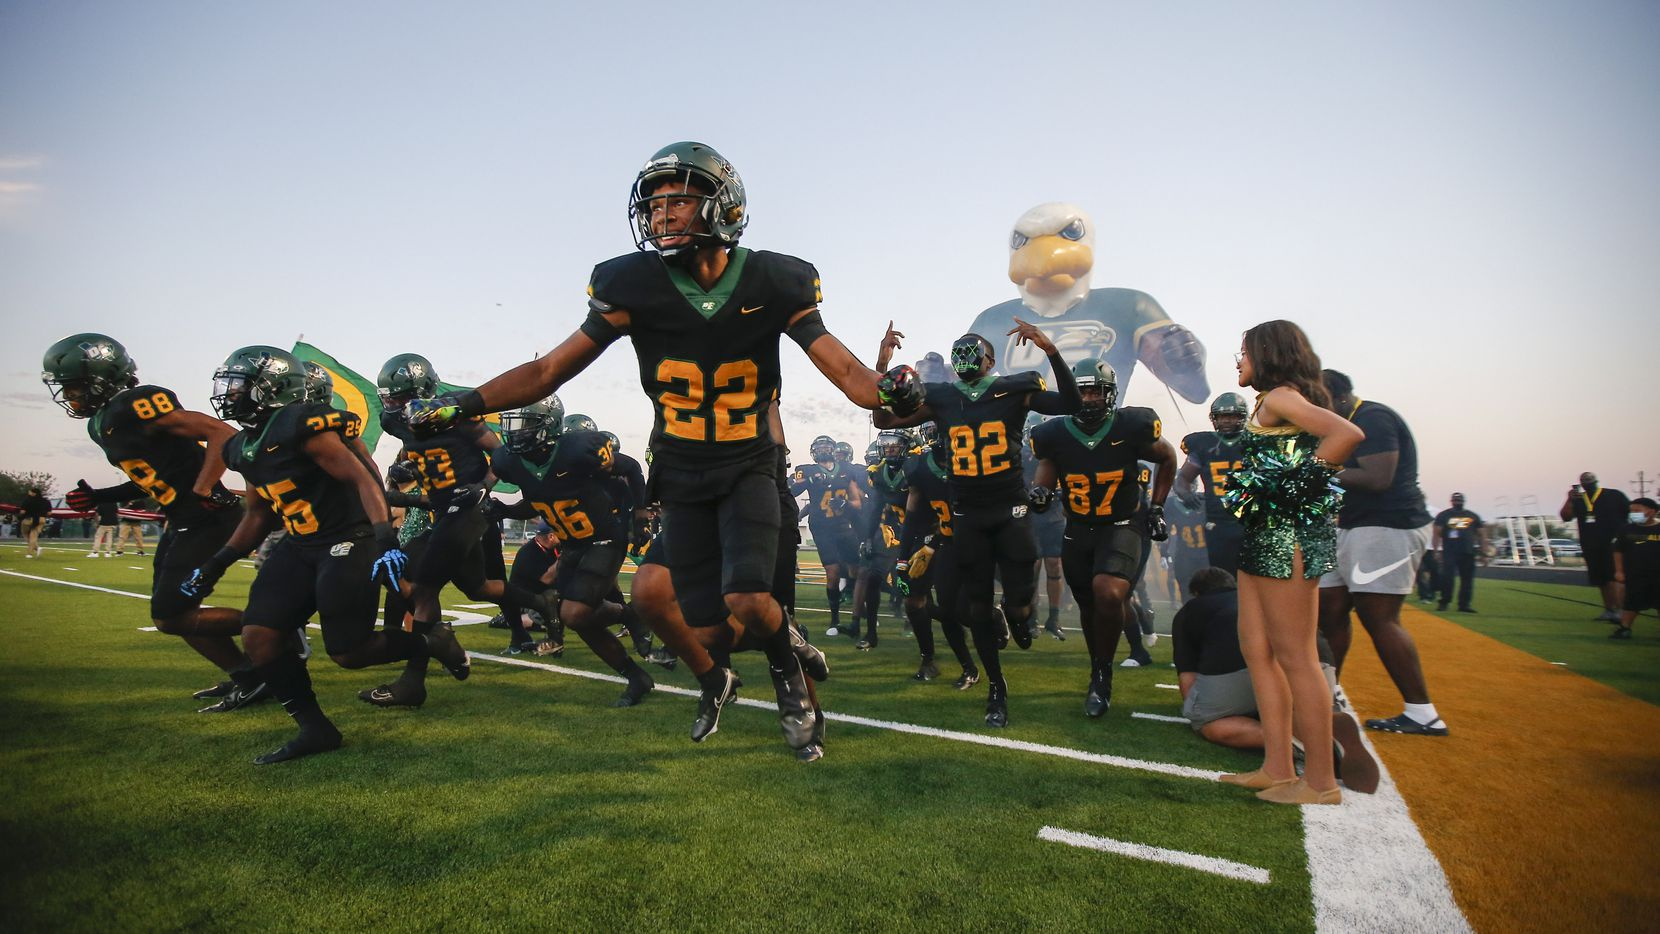 DeSoto junior defensive back Jamarion Ravenell (22) and his teammates take the field for the first half of a high school football game against Duncanville at DeSoto High School, Friday, September 17, 2021.